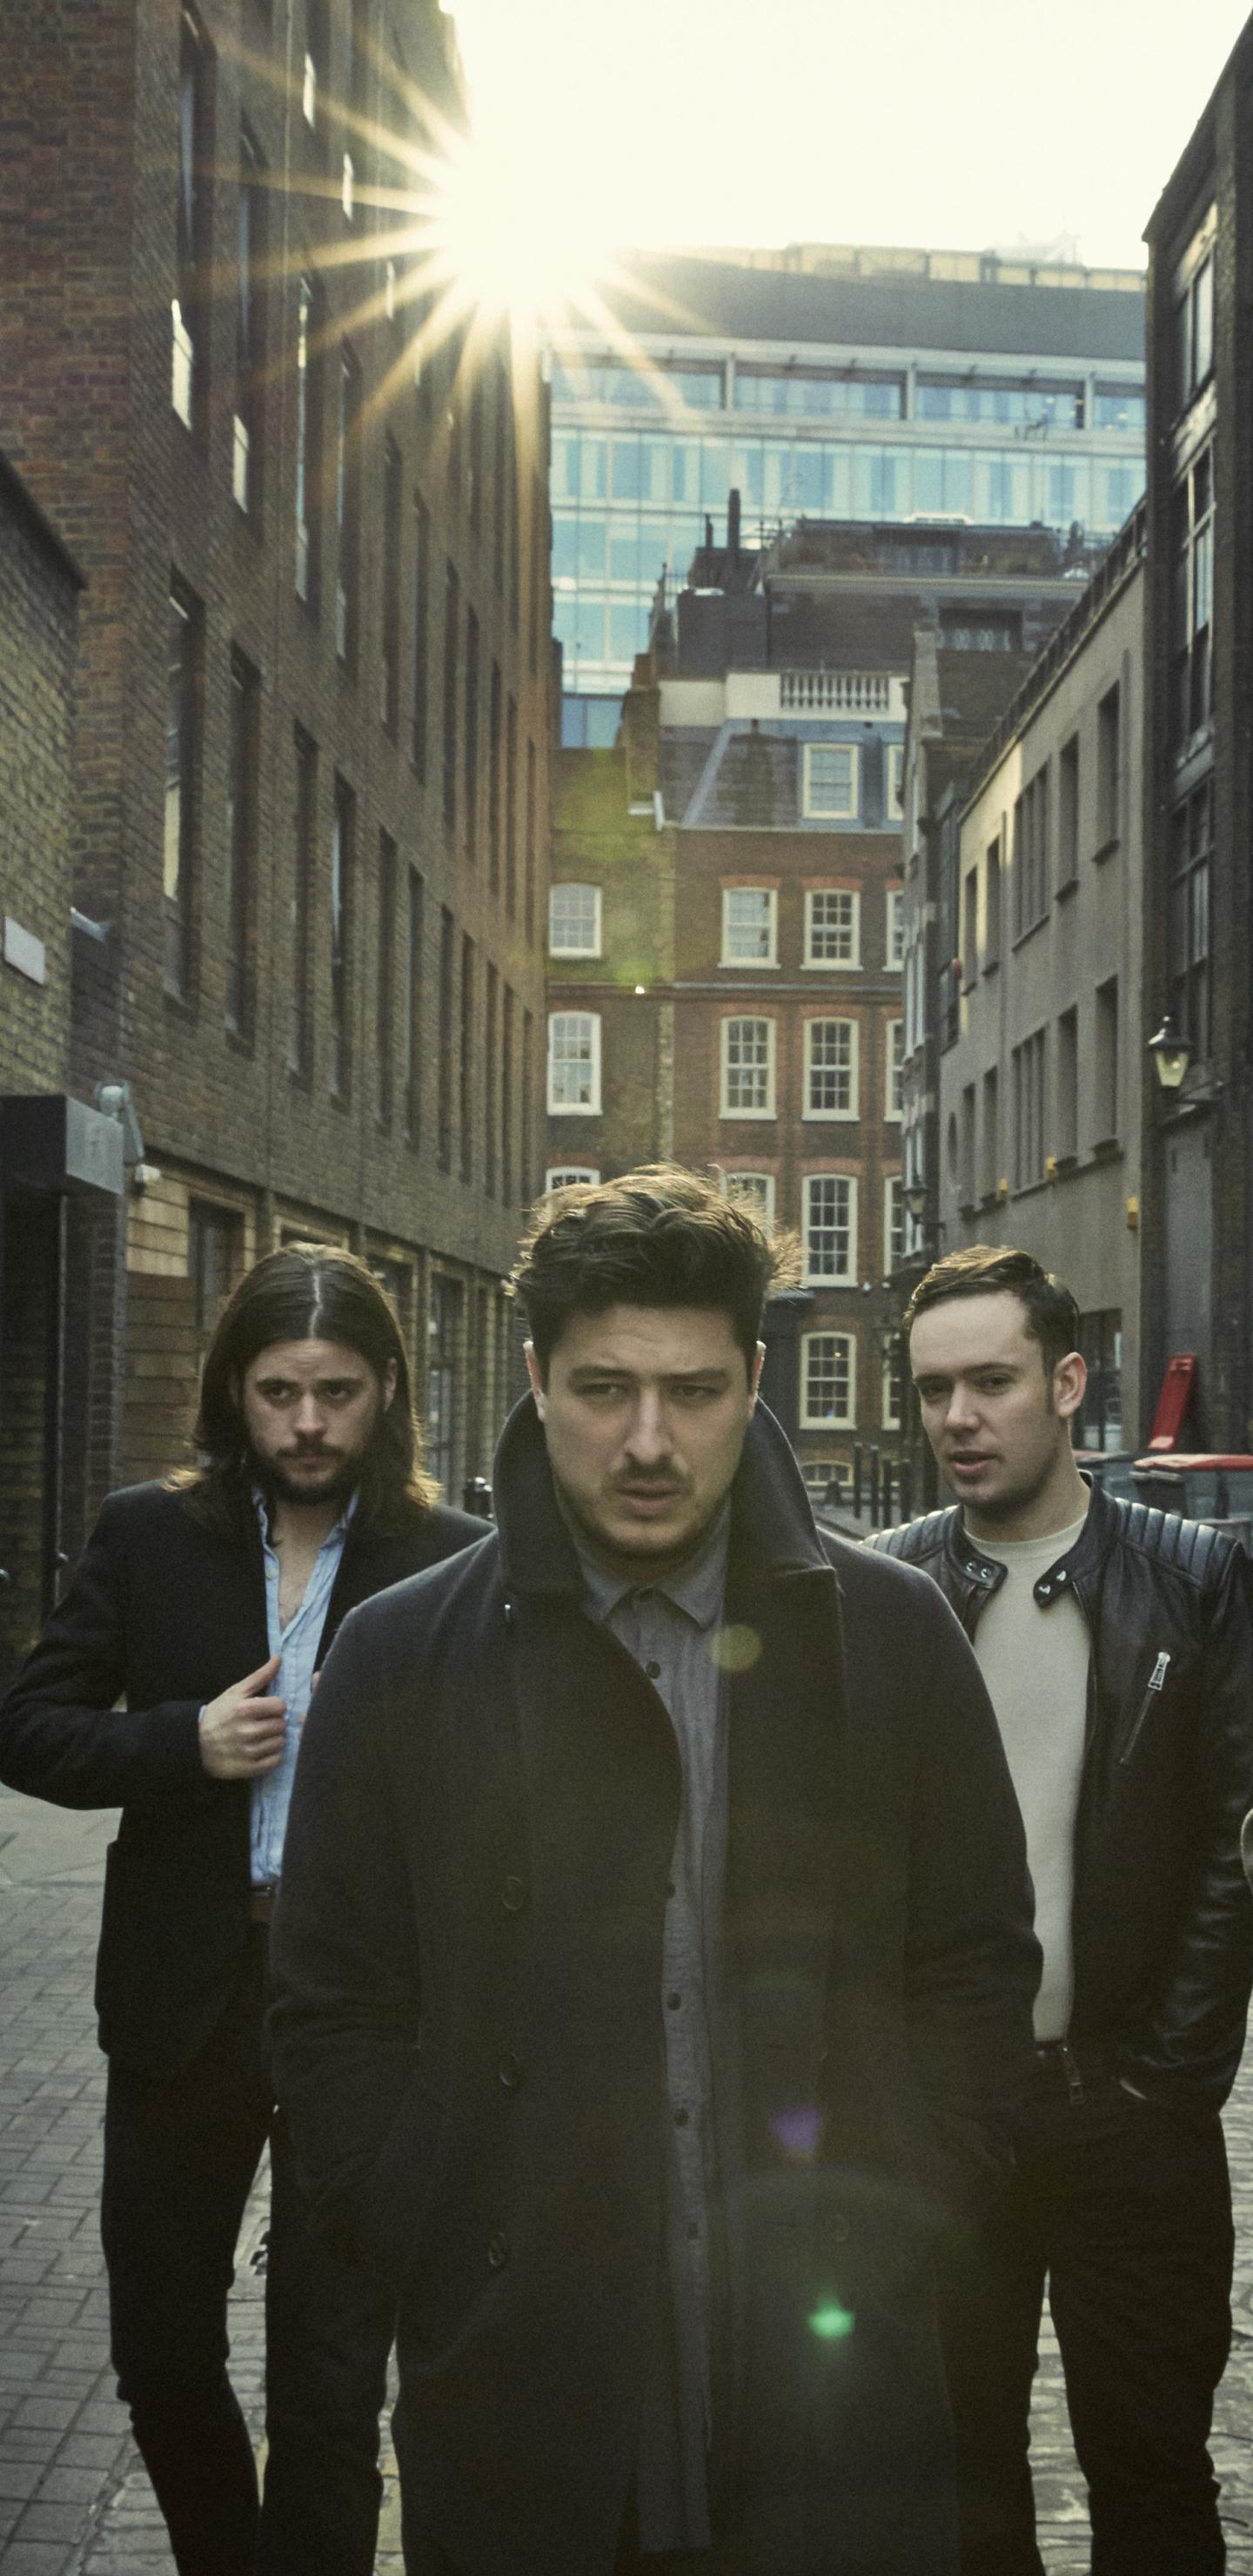 Download Mumford And Sons Wallpaper Hd Backgrounds Download Itl Cat